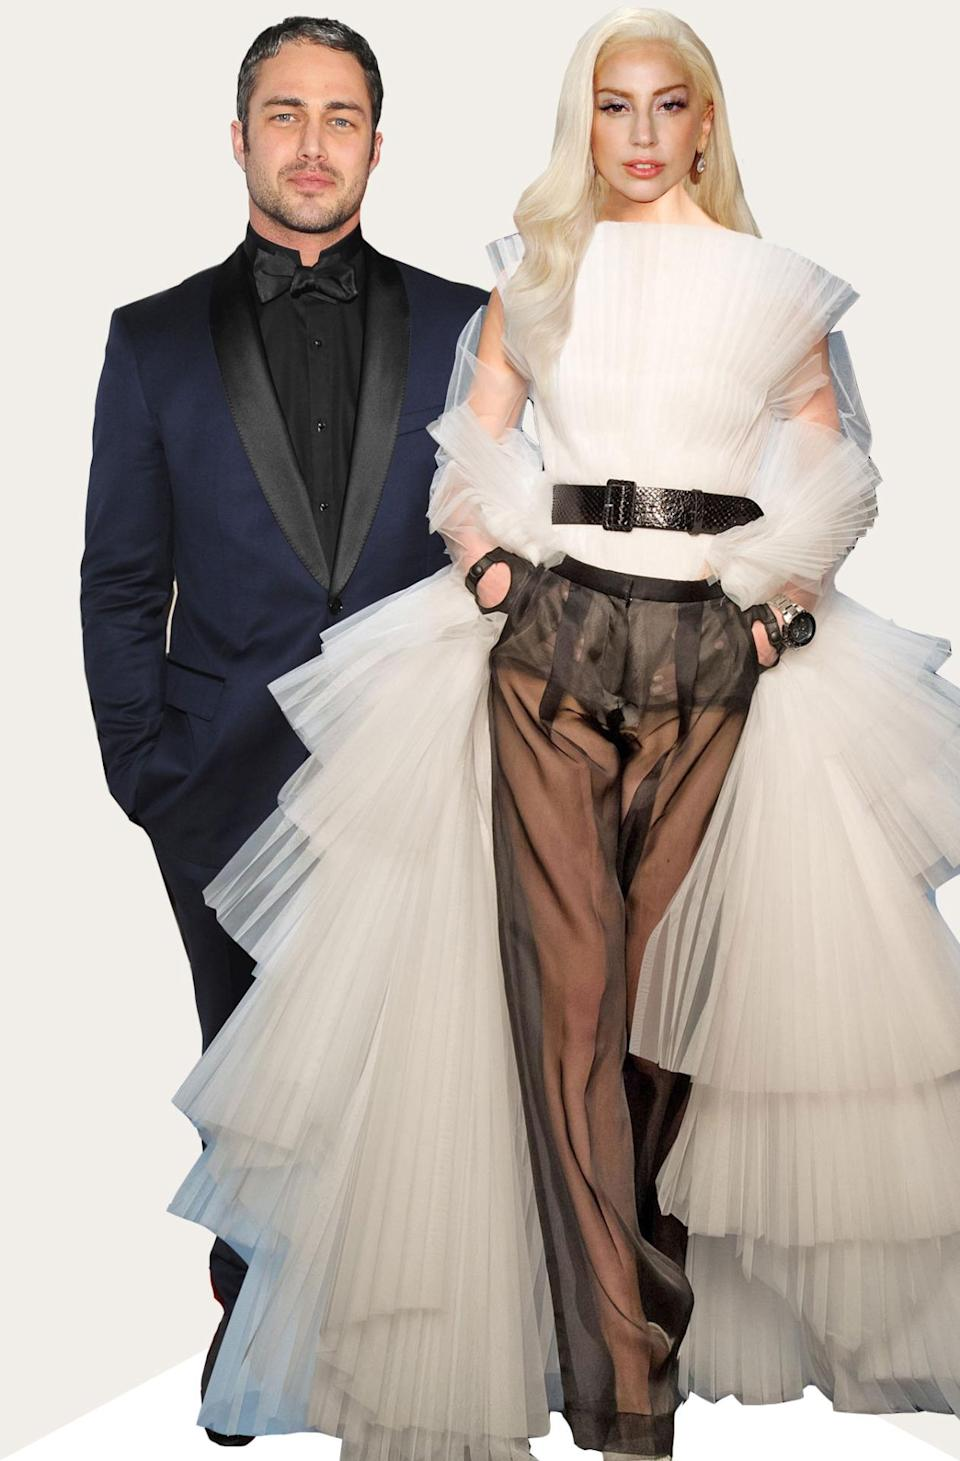 On the one hand, Gaga might wear this look grocery shopping. On the other, it'd make a fabulous wedding dress.